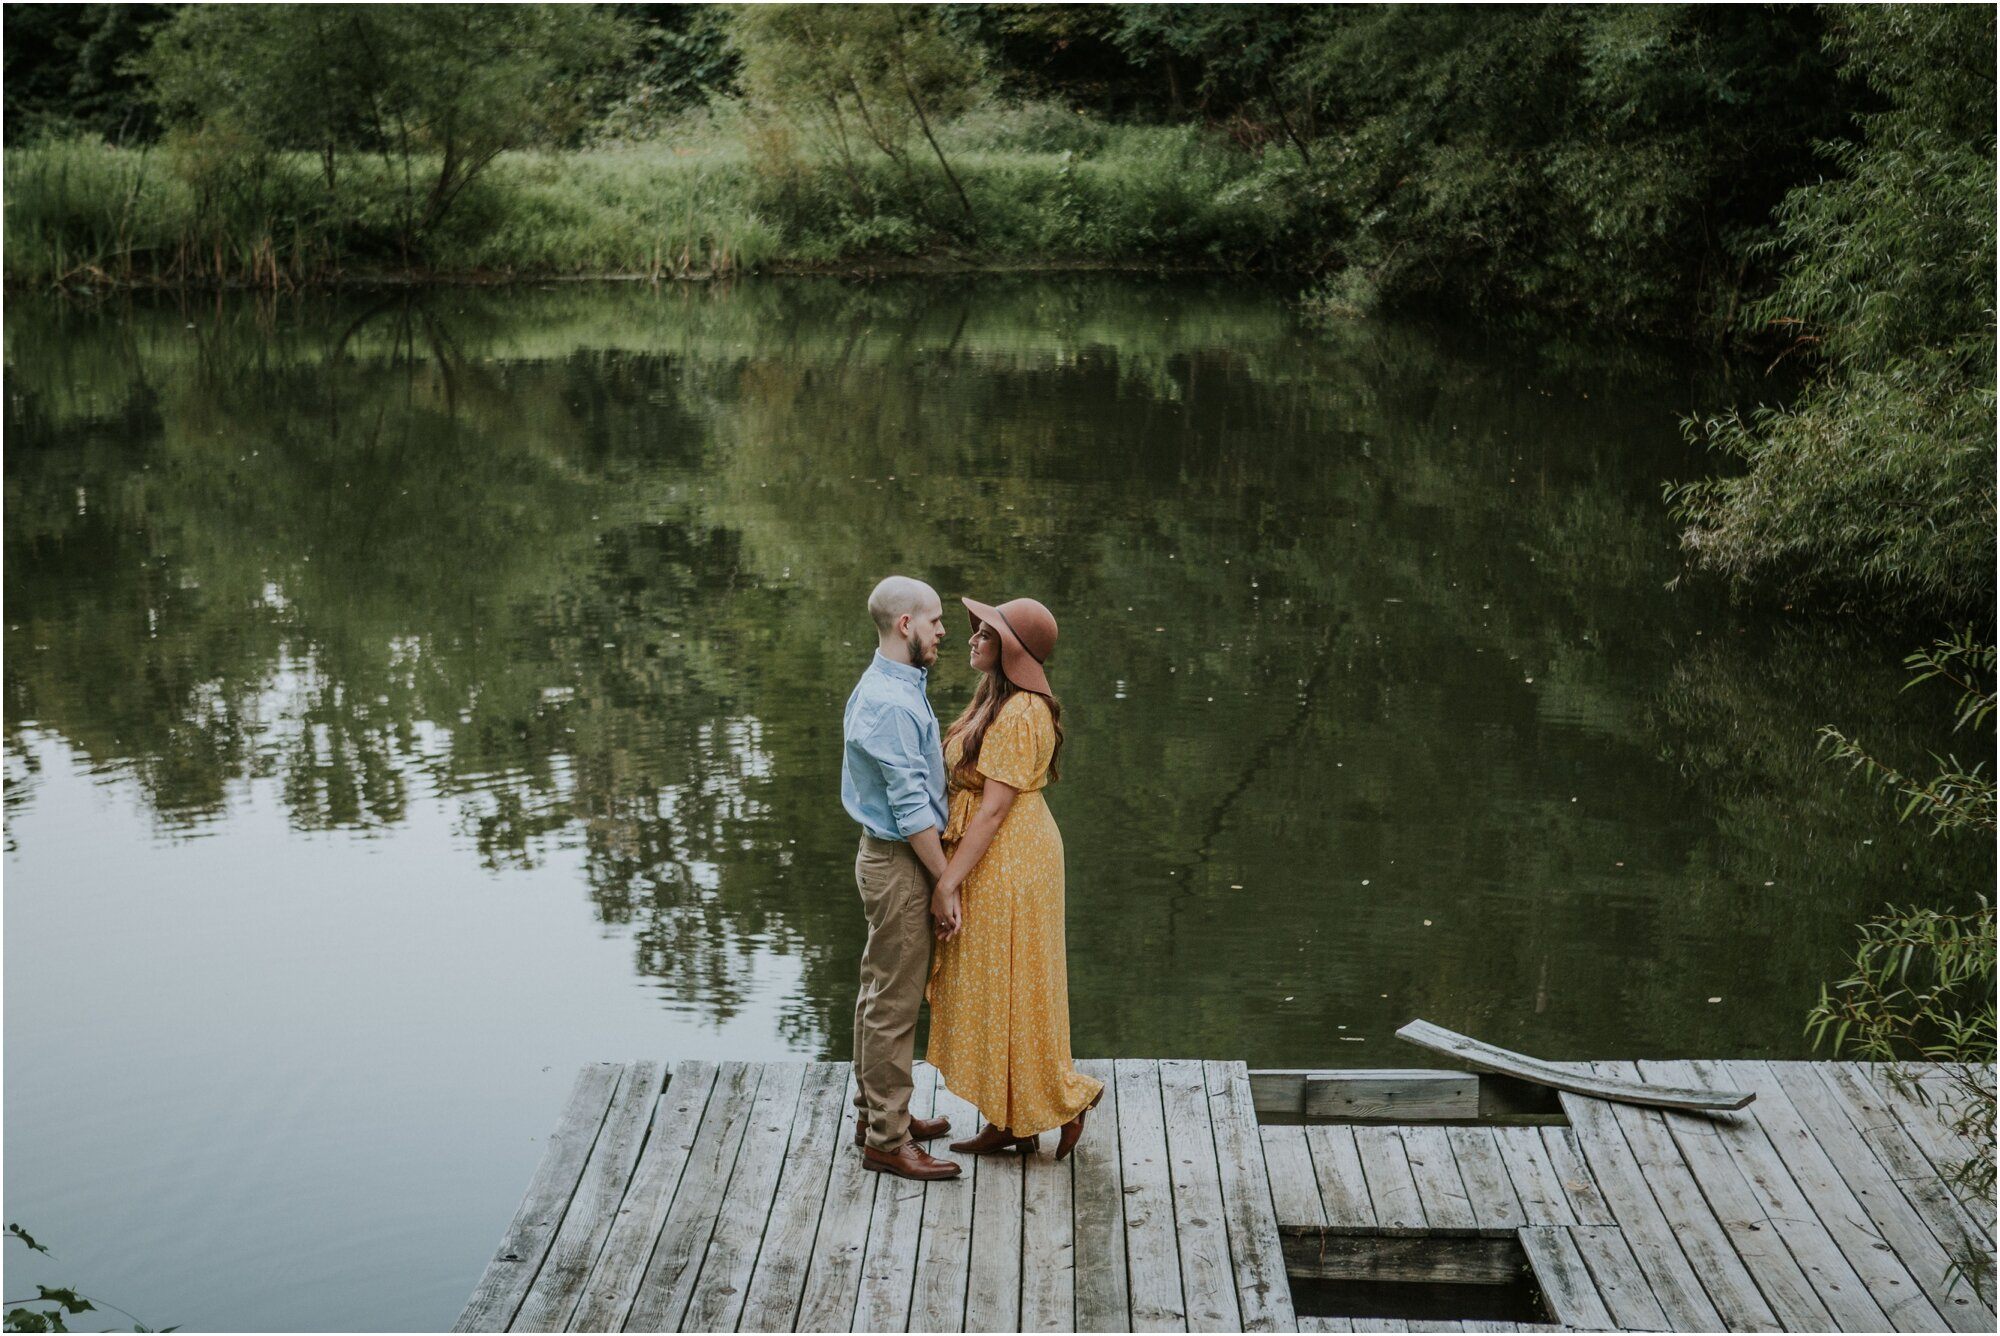 kingsport-tennessee-backyard-pond-bays-mountain-summer-engagement-session_0030.jpg